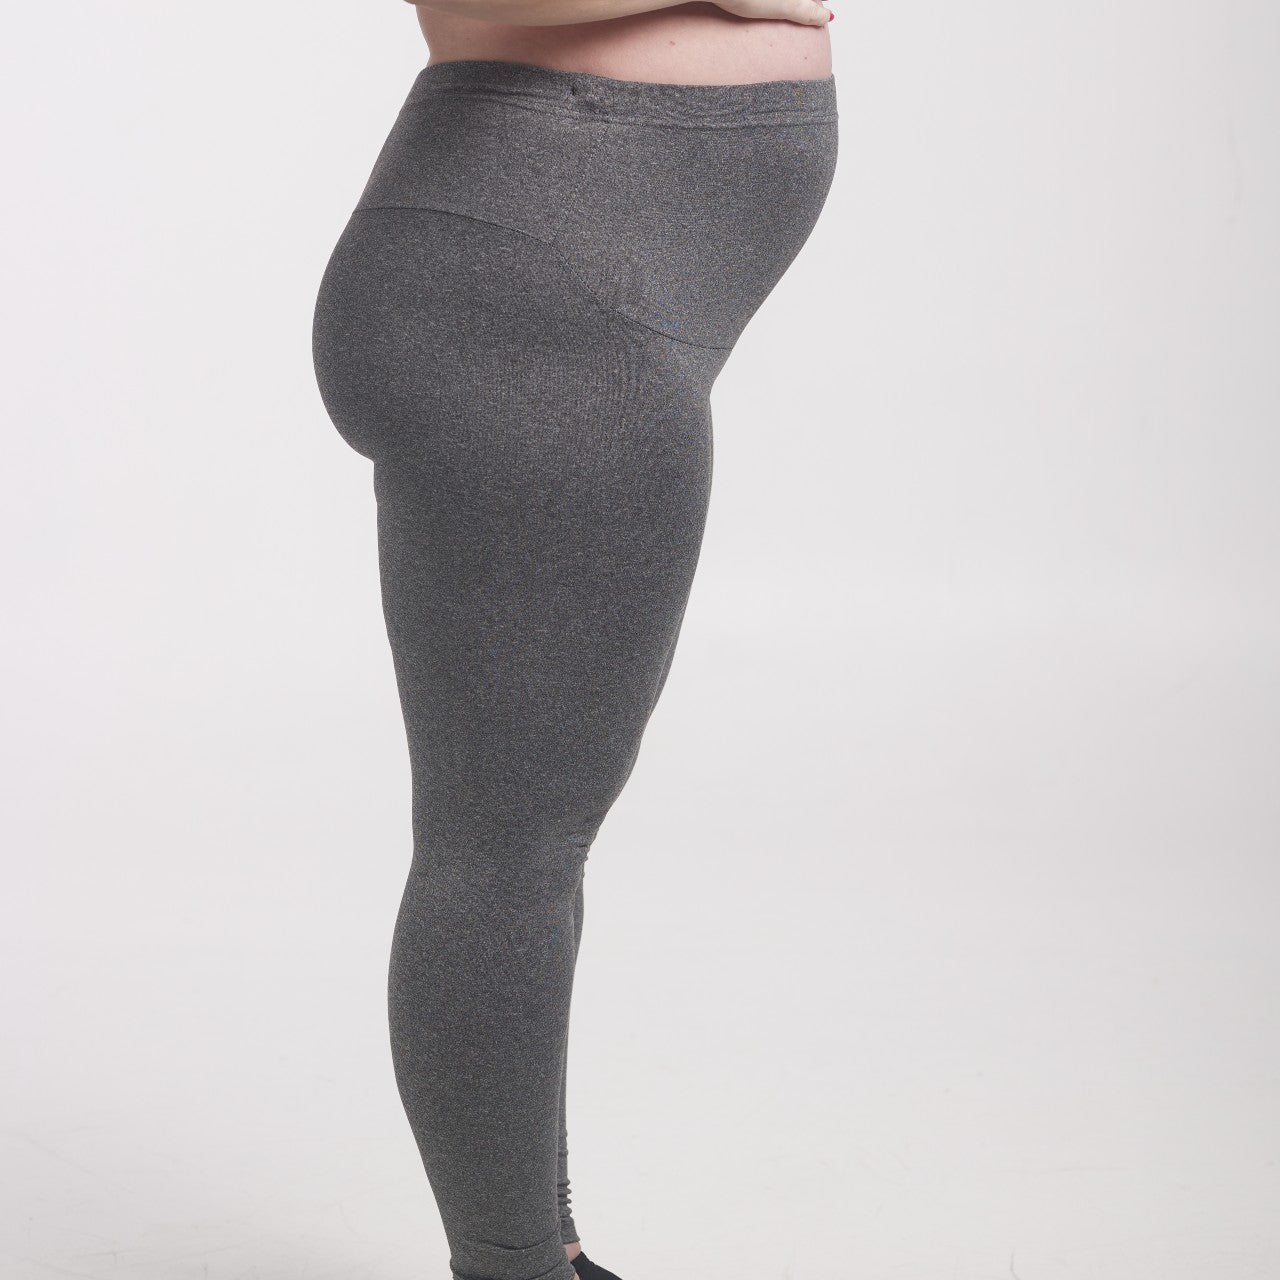 Momma's Comfy Maternity Leggings Momma's Shop